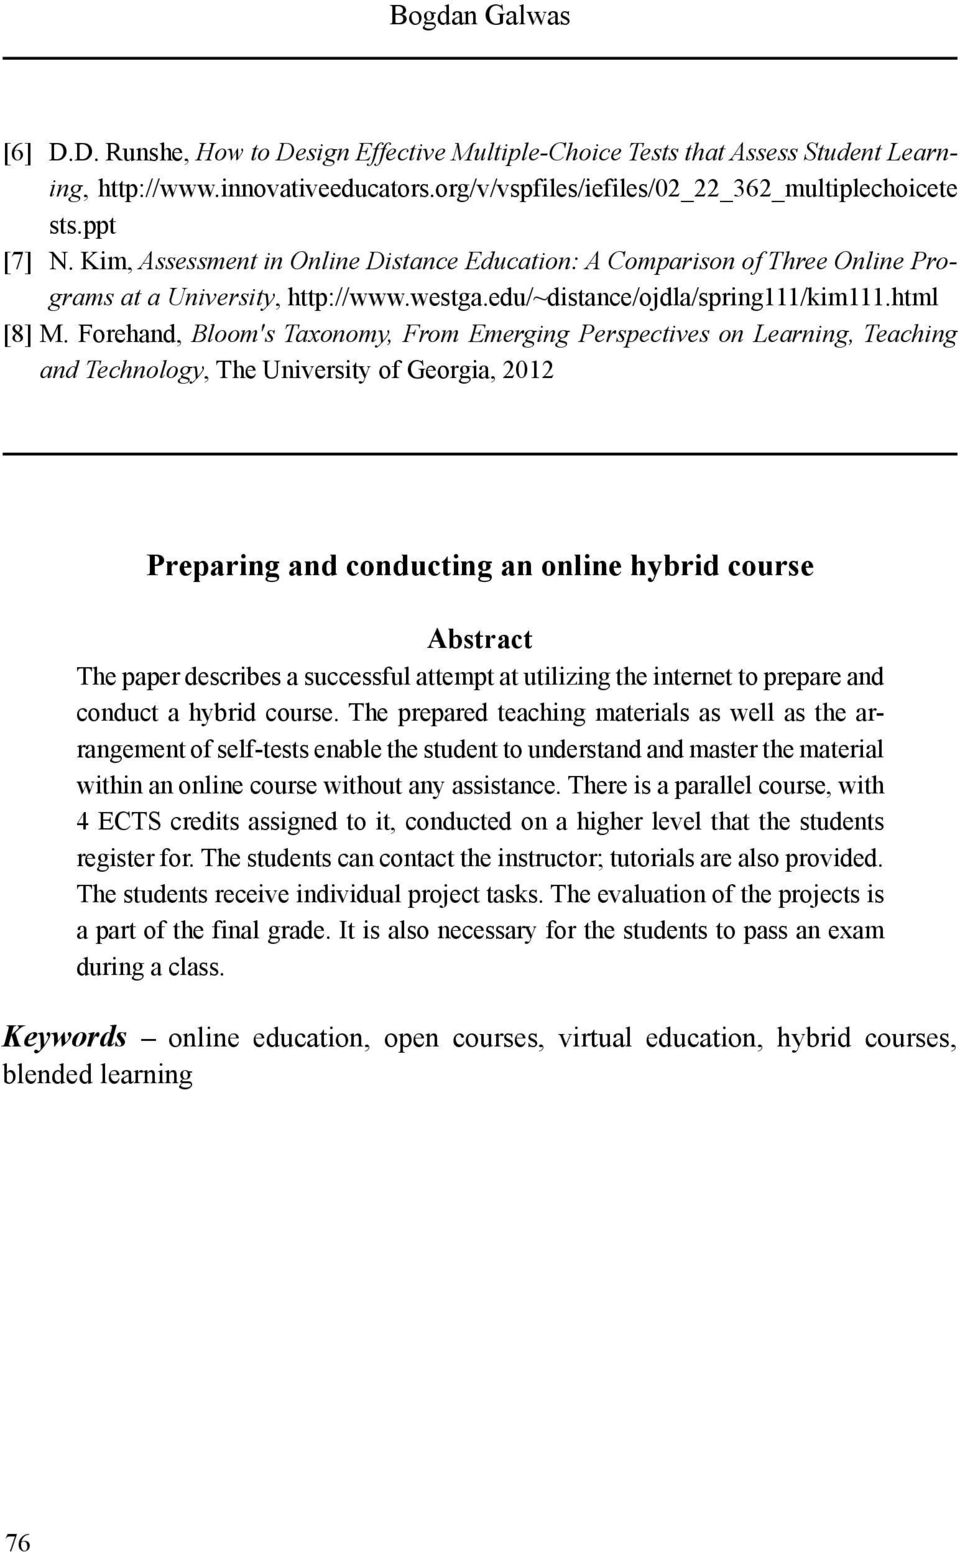 Forehand, Bloom's Taxonomy, From Emerging Perspectives on Learning, Teaching and Technology, The University of Georgia, 2012 Preparing and conducting an online hybrid course Abstract The paper